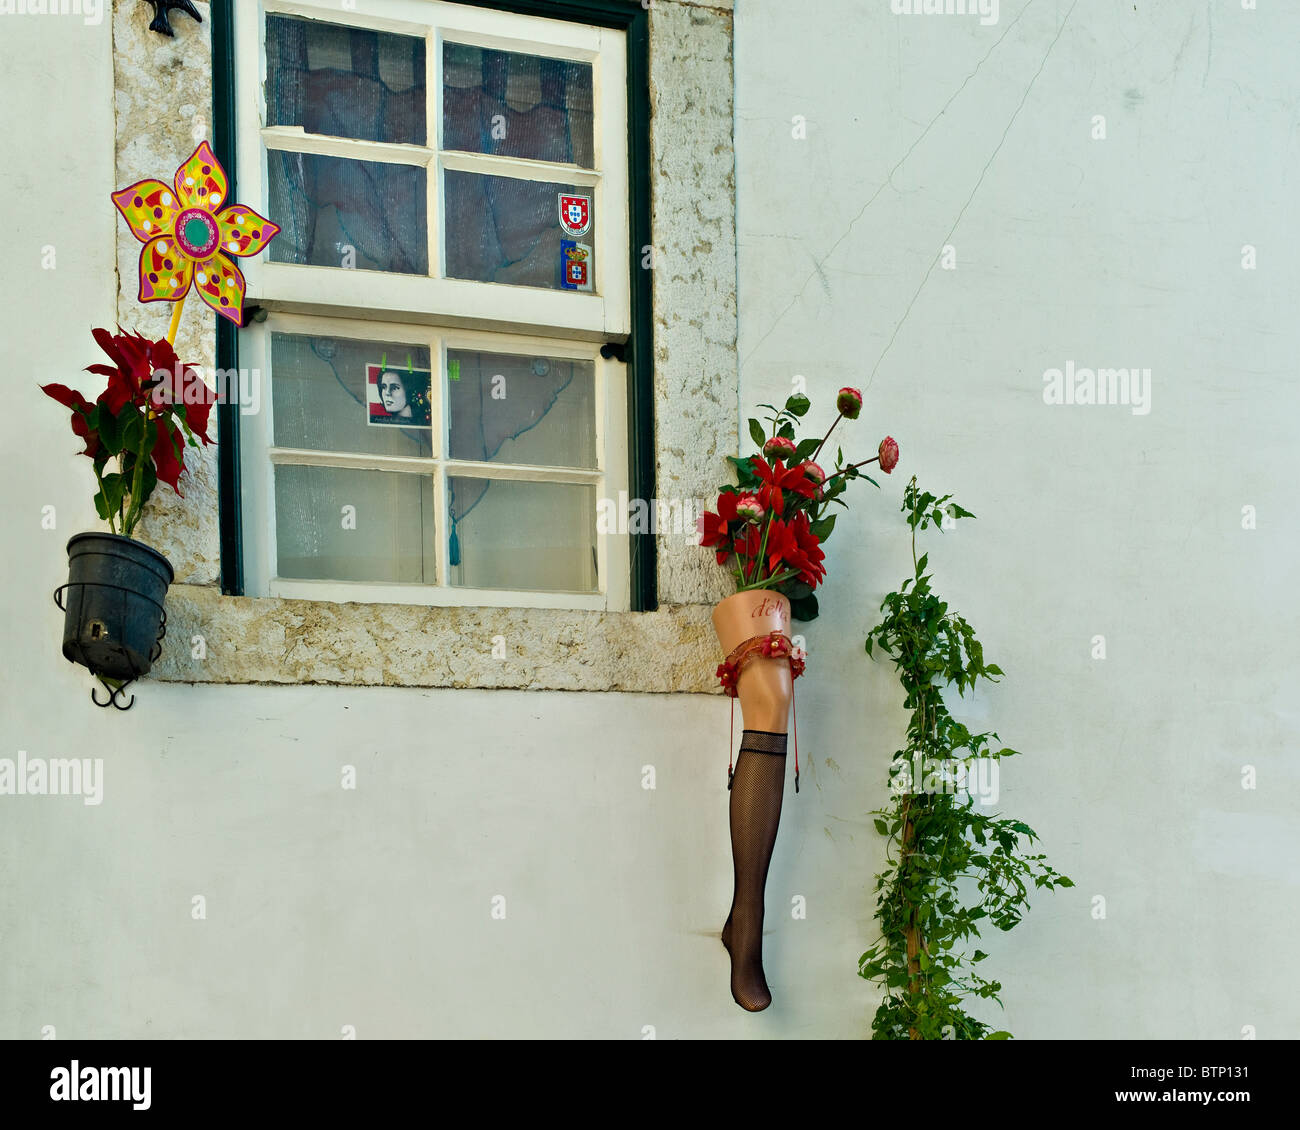 Unusual Plant Pot, Alfalma District, Lisbon, Portugal   Stock Image